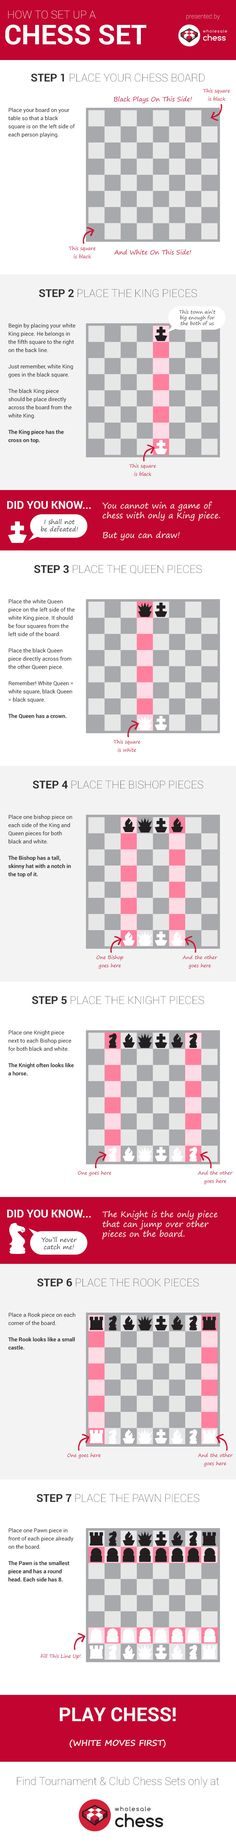 A guide for learning how to set up a chess board